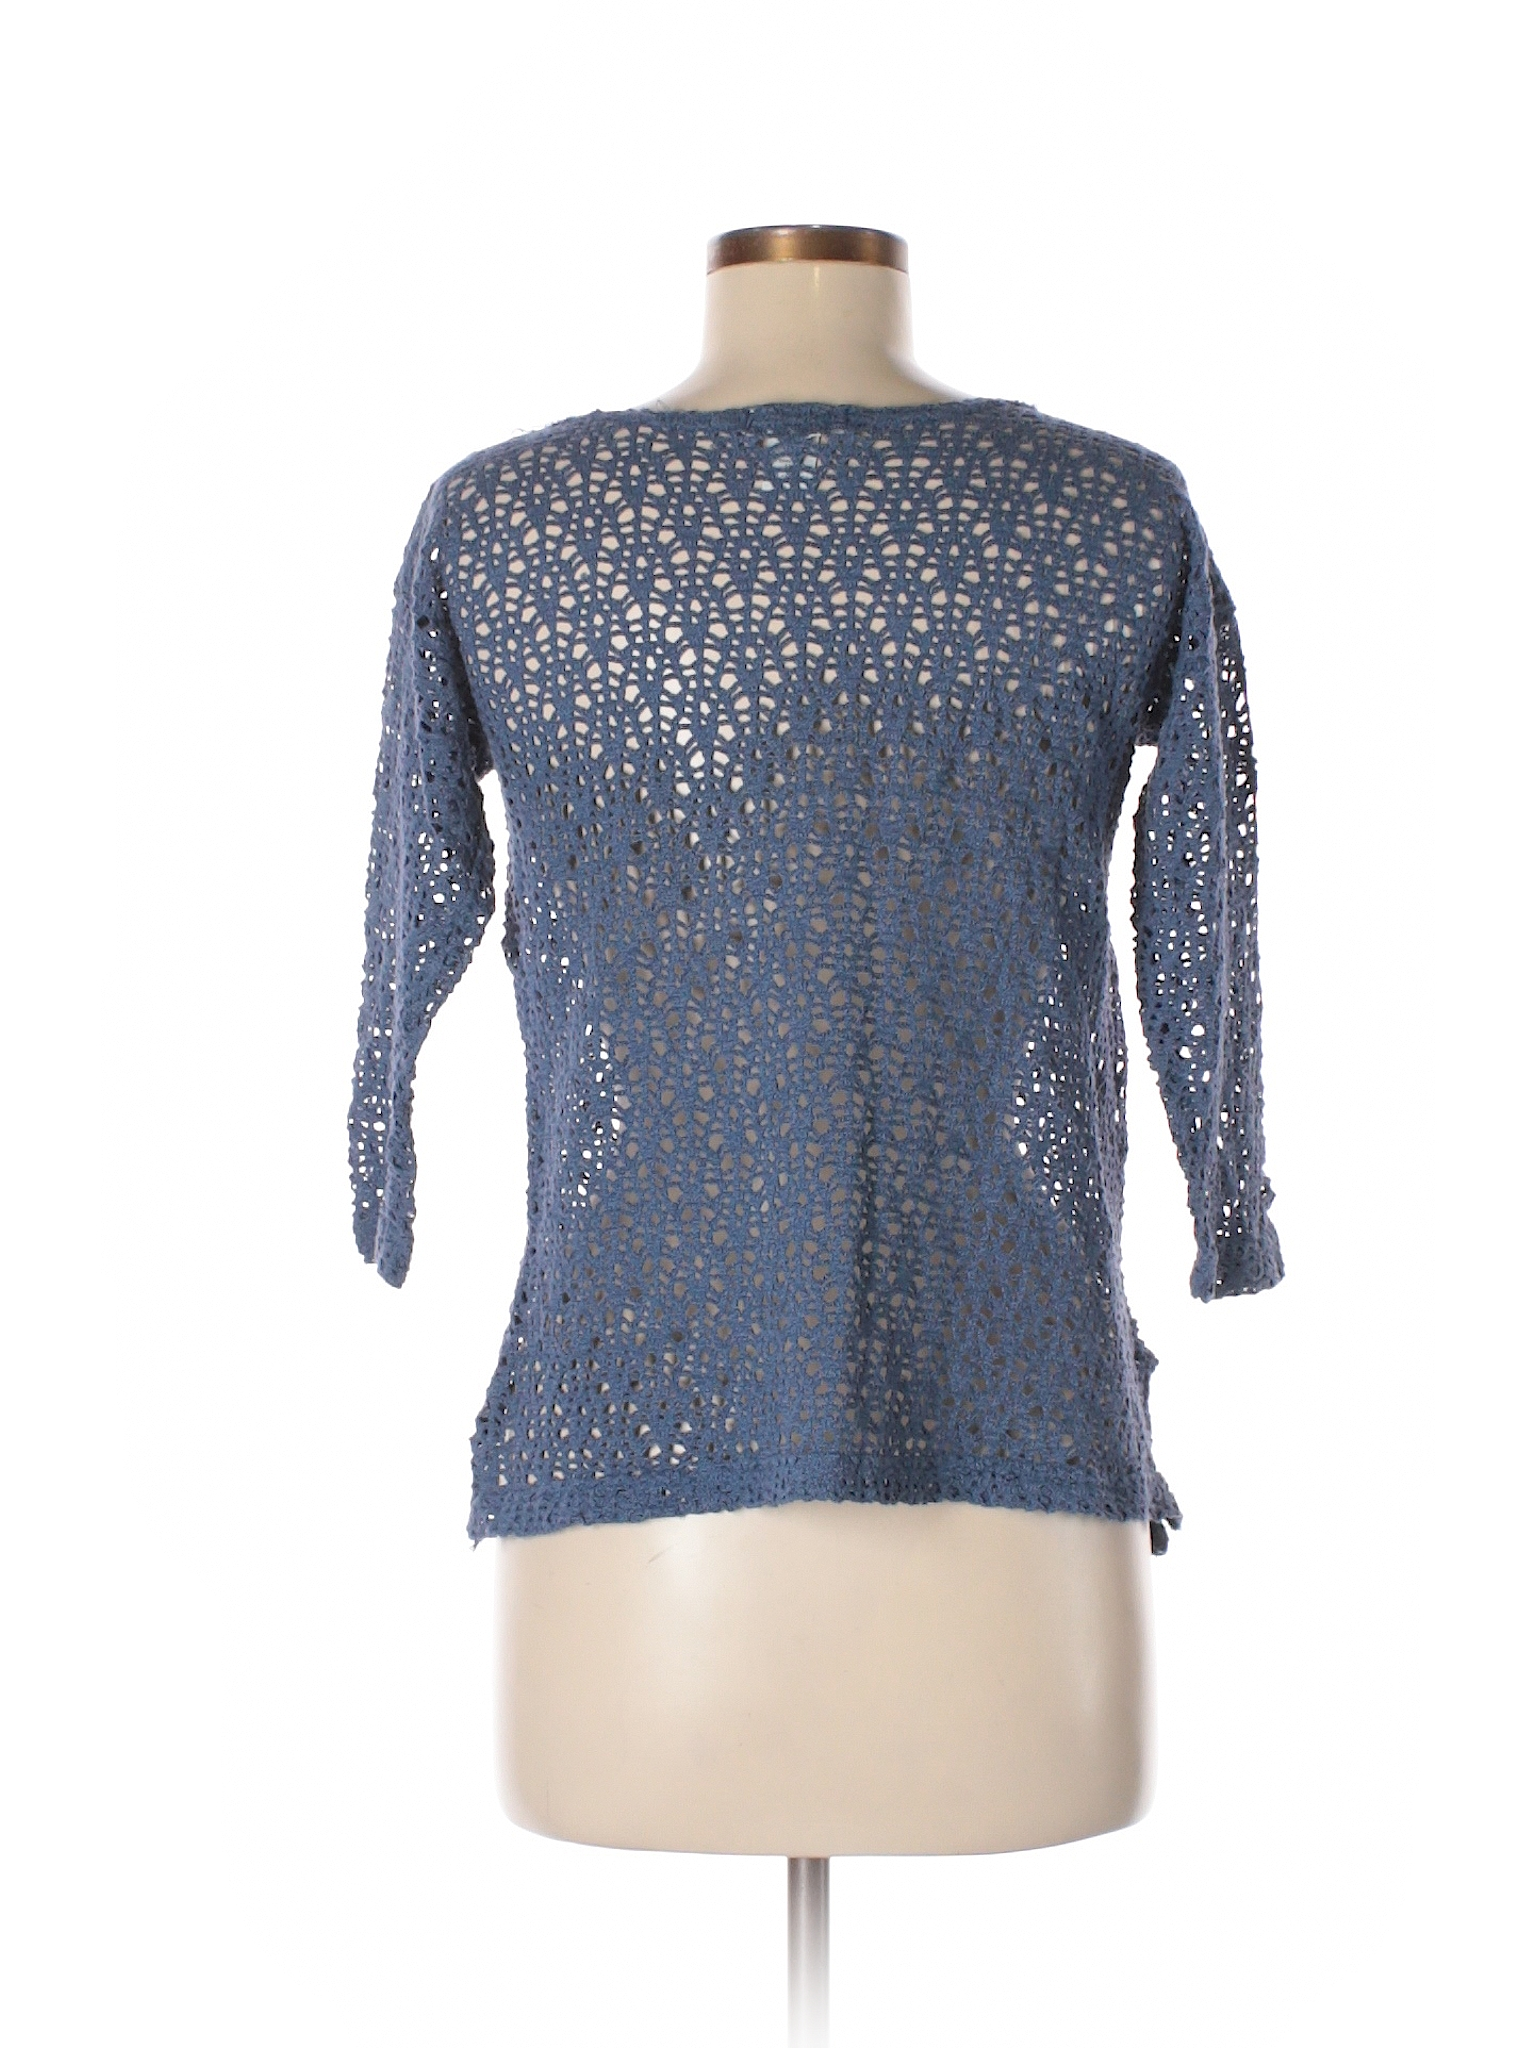 d944c7c8a3 Express Tricot Pullover Sweater  Size 4.00 Blue Women s Tops -  8.99